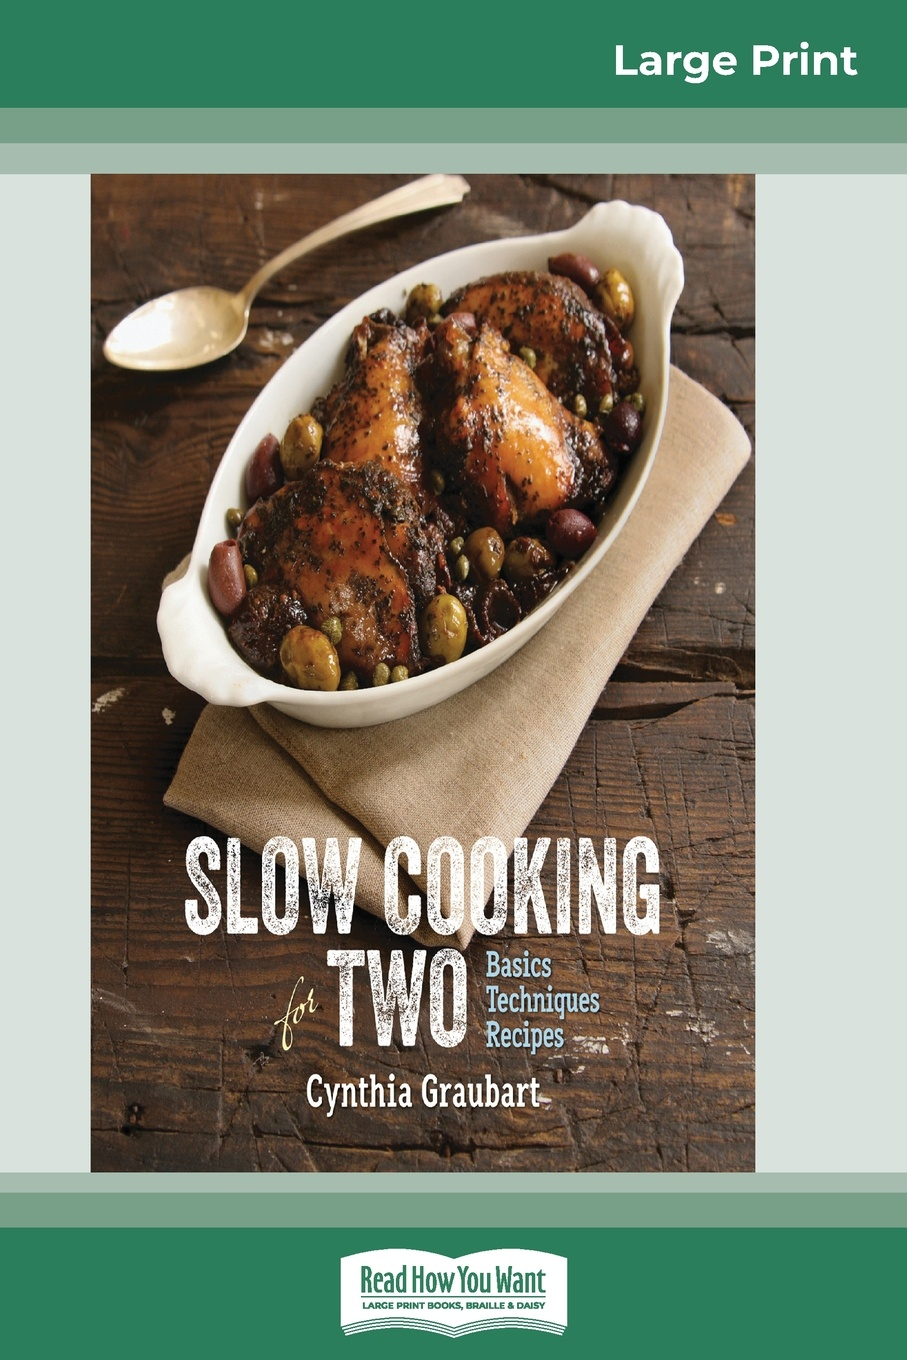 Cynthia Graubart Slow Cooking for Two. Basic Techniques Recipes (16pt Large Print Edition) new german cooking recipes for classics revisited